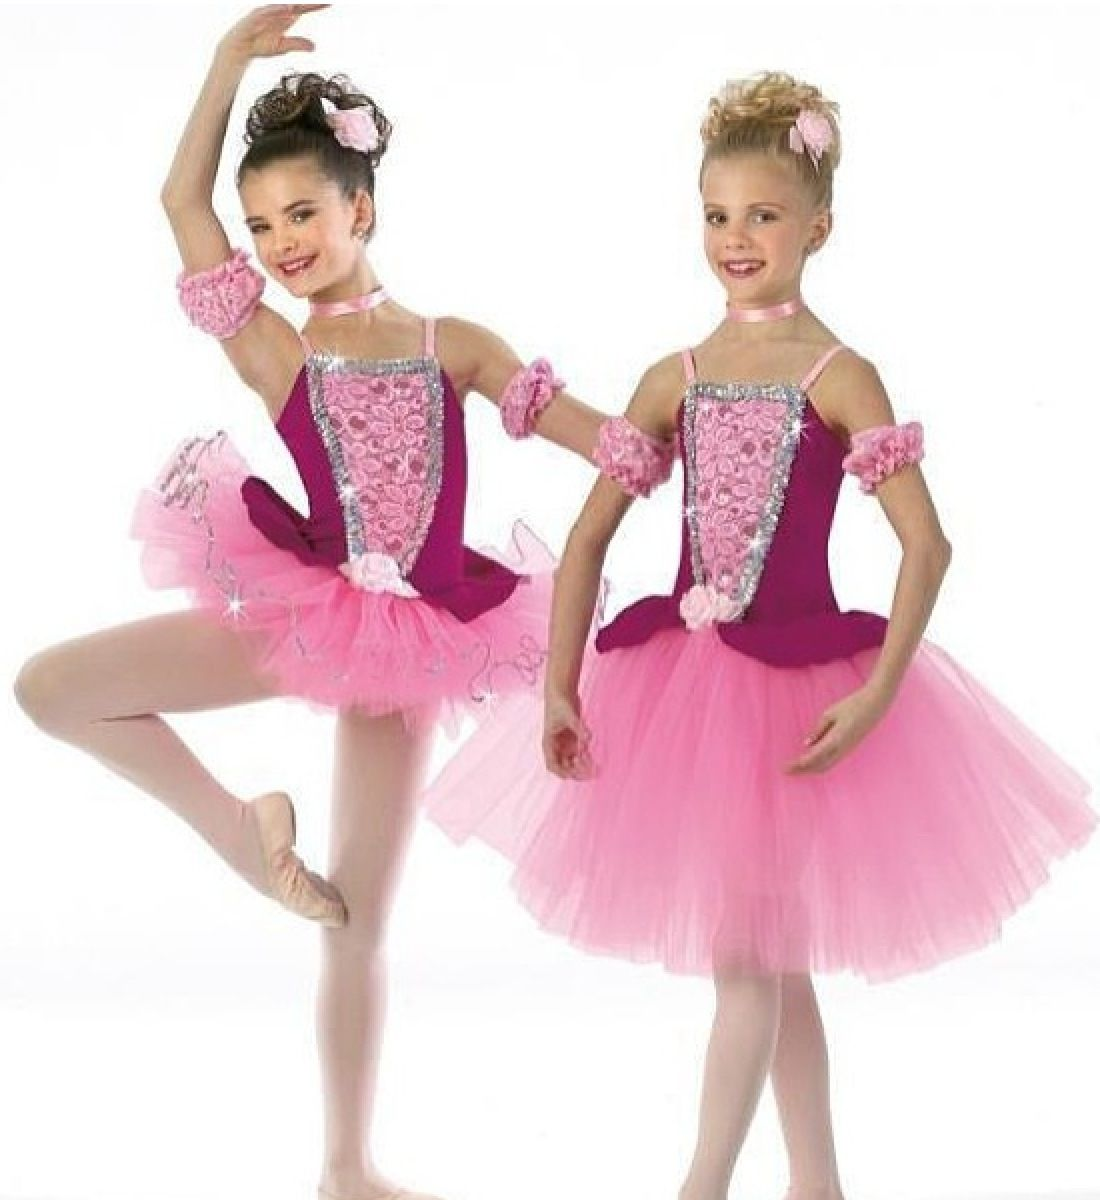 Brooke and Paige Hyland | Dance Moms | Pinterest | Paige ...